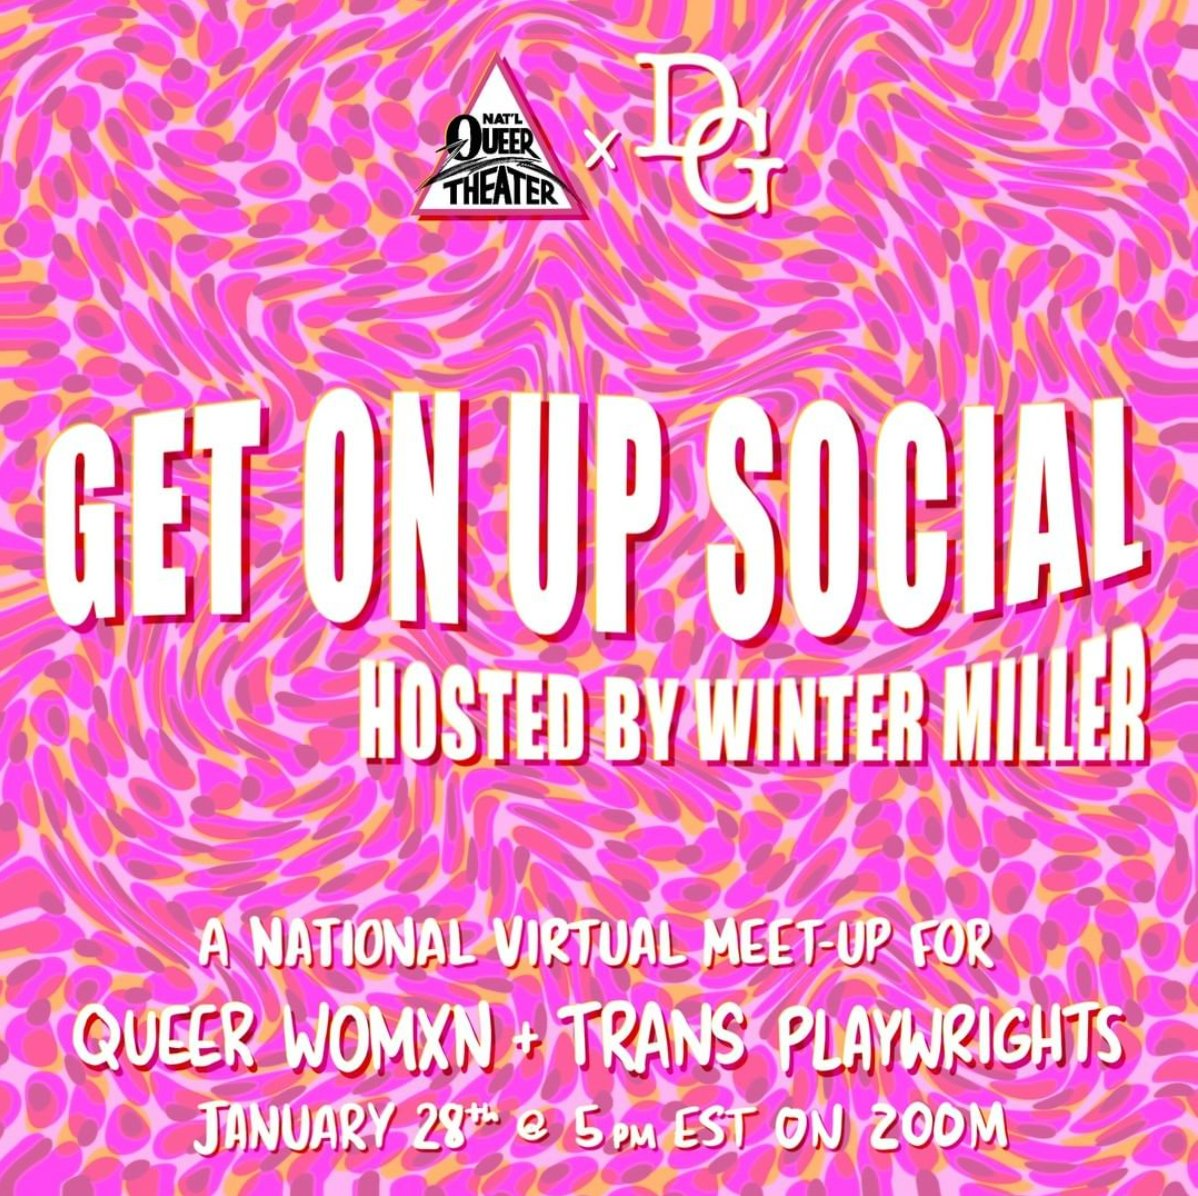 Are you a #Queer femme or #Trans playwright? Do you want to meet other writers like yourself and talk shop (and whatever else comes to mind)? Sign up for GET ON UP SOCIAL hosted by #NQT and @dramatistsguild ! Learn more here: https://t.co/v160RosmLW https://t.co/VppEREEmva